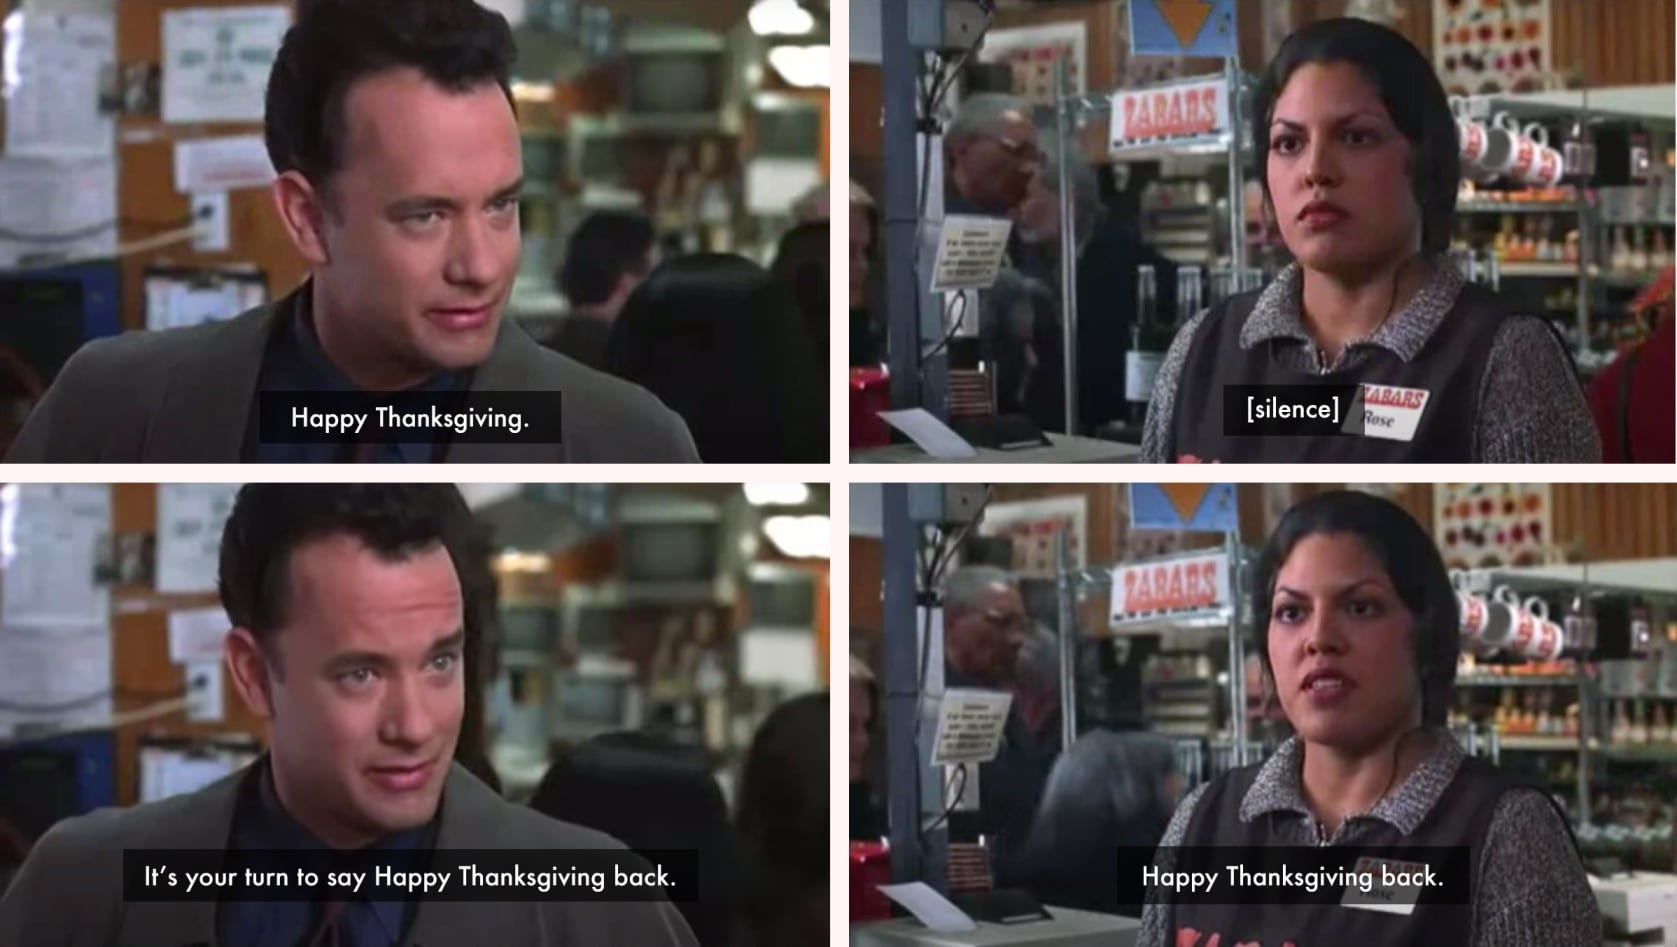 Best Thanksgiving quotes and closed captions